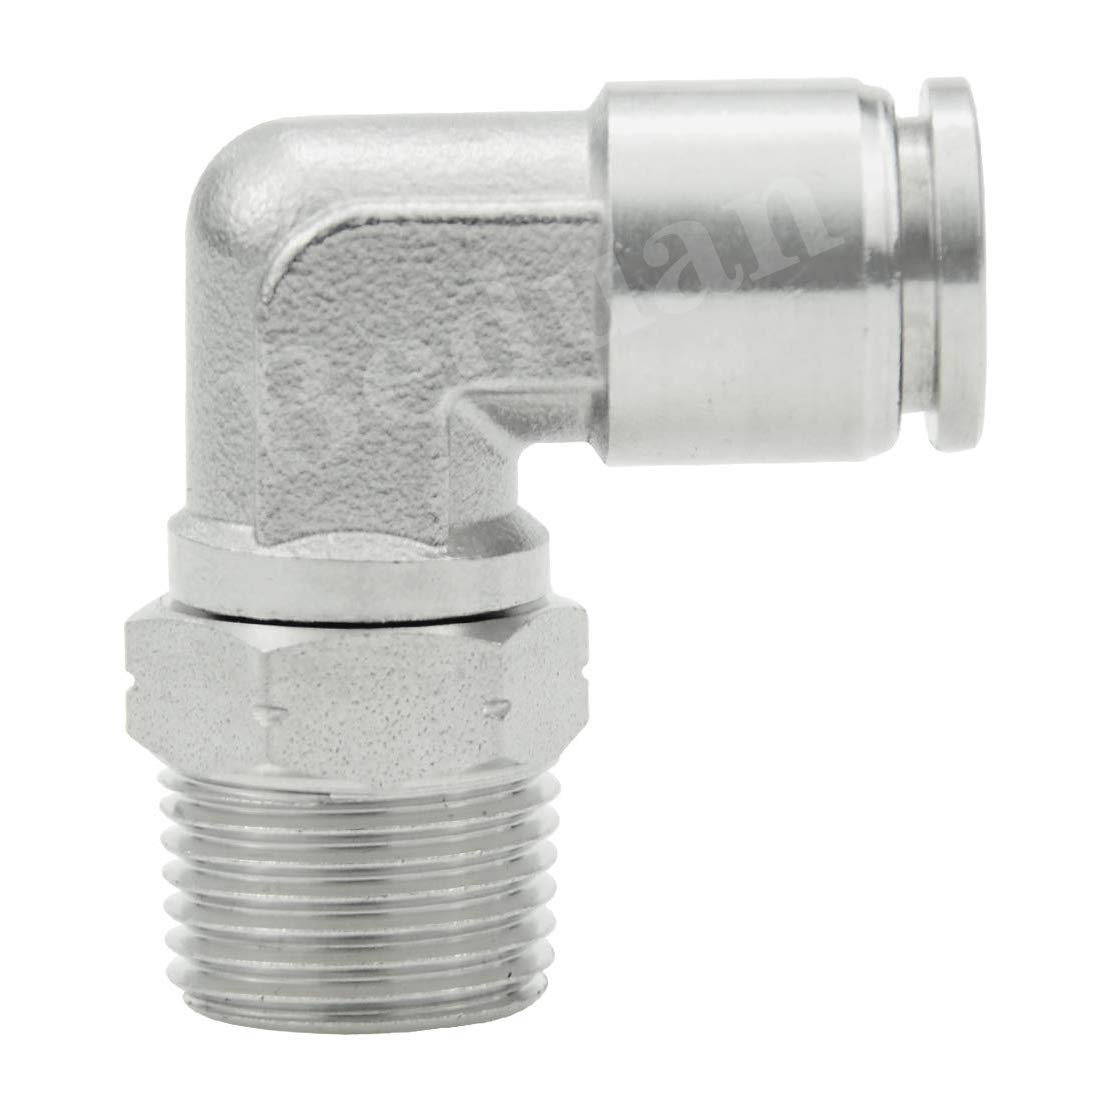 1//2 Tube OD x 1//2 NPT Male 90 Degree Elbow Adapter 304 Stainless Steel Air Union Fitting Beduan Push to Connect Fitting Elbow